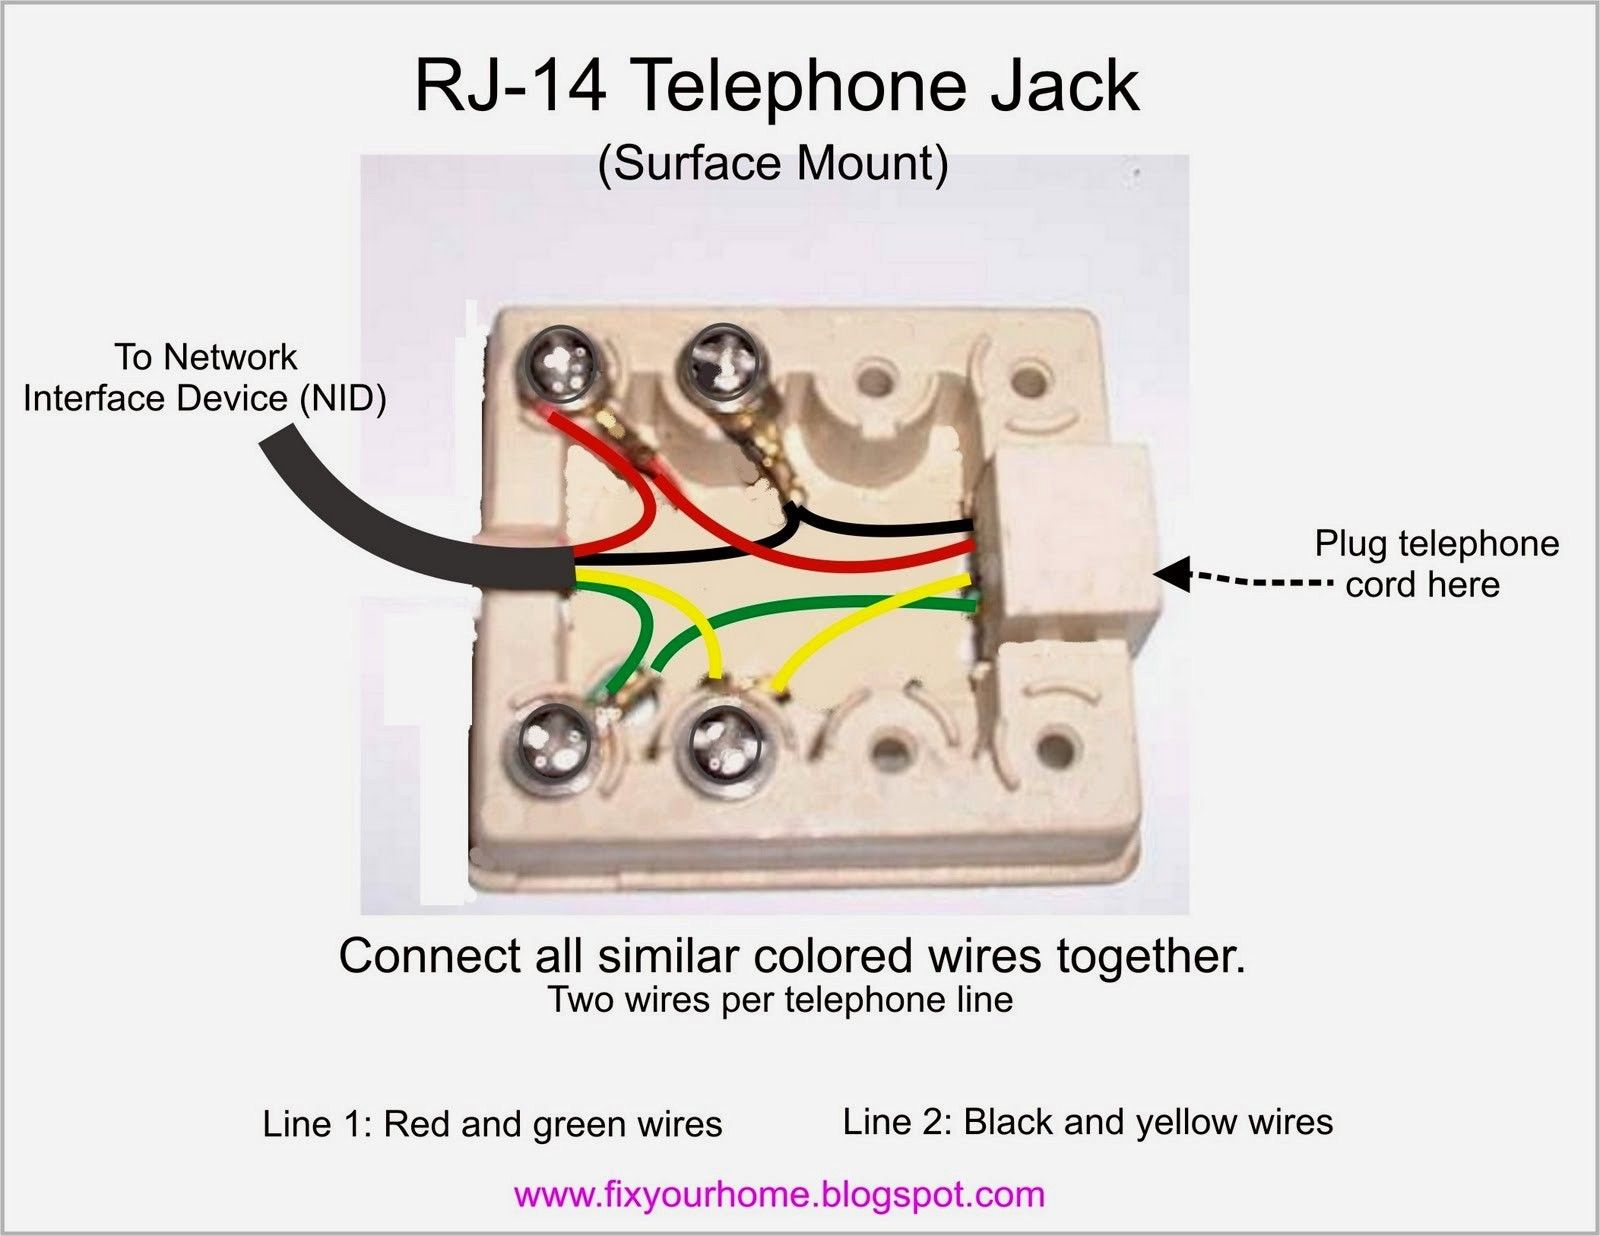 New Wiring Diagram For Home Phone Jack Diagram Diagramsample Diagramtemplate Phone Telephone Phone Jack